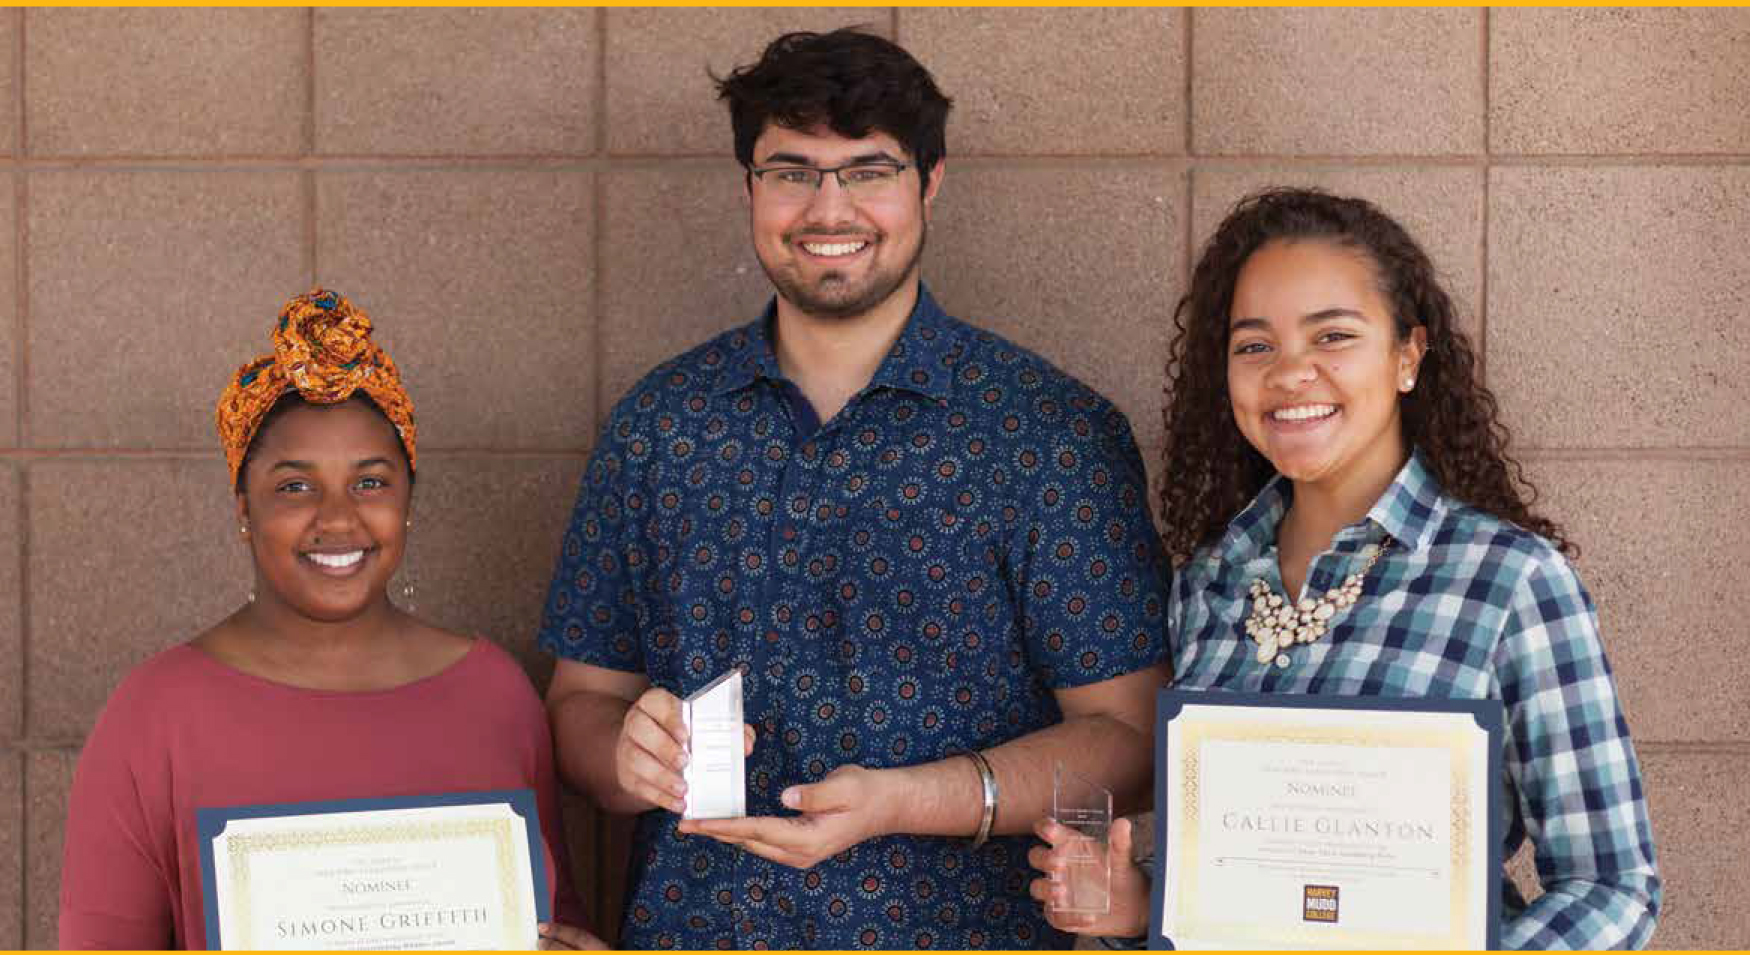 Harvey Mudd Leadership Award recipients 2018